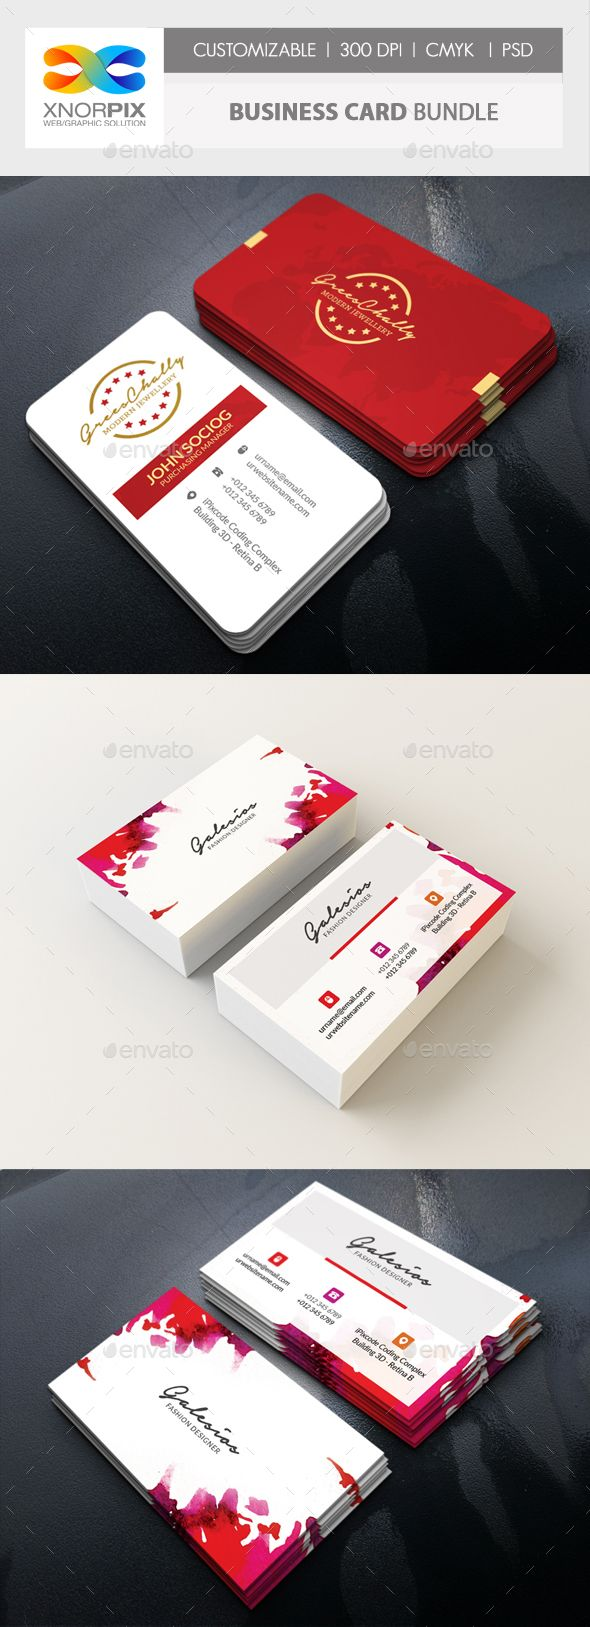 Business card bundle corporate business business cards and business business card bundle corporate business cards download here https magicingreecefo Choice Image